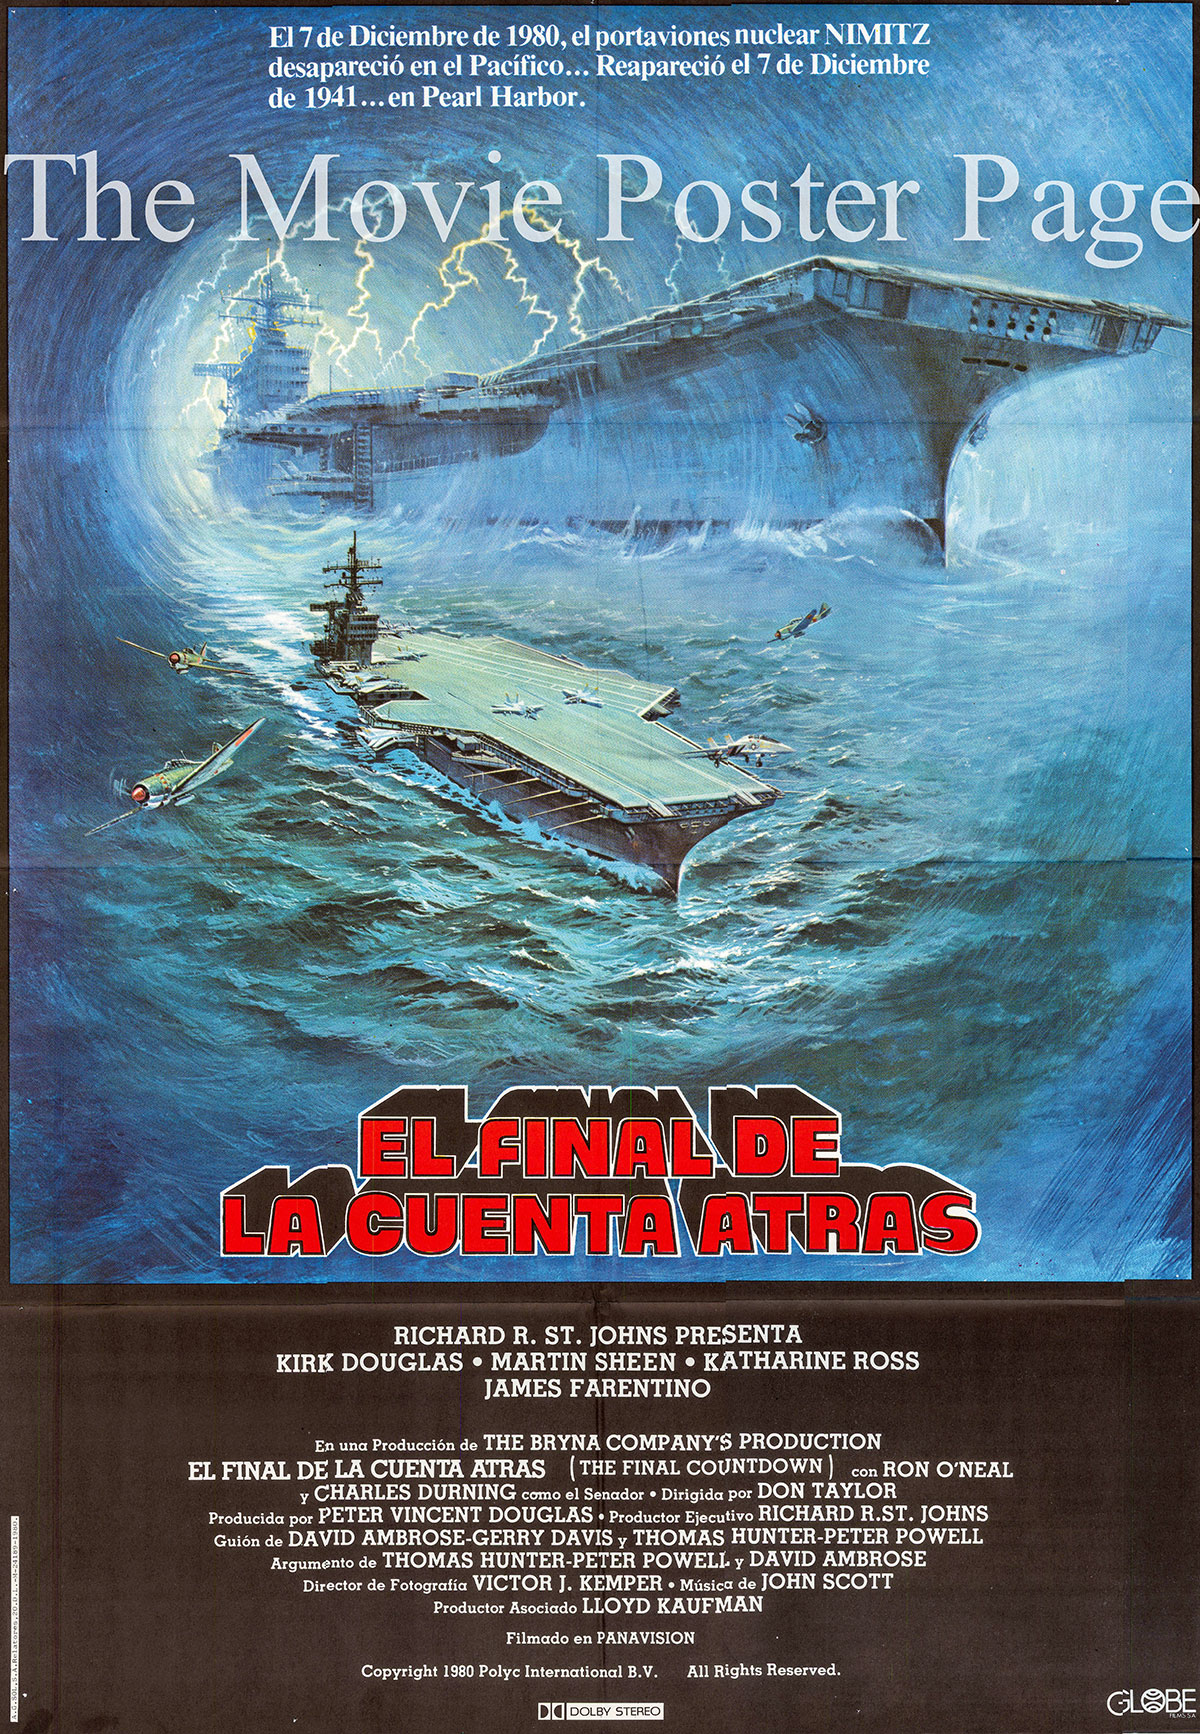 Pictured is a Spanish one-sheet poster for the 1980 Don Taylor film Final Countdown starring Kirk Douglas as Captain Matthew Yelland.